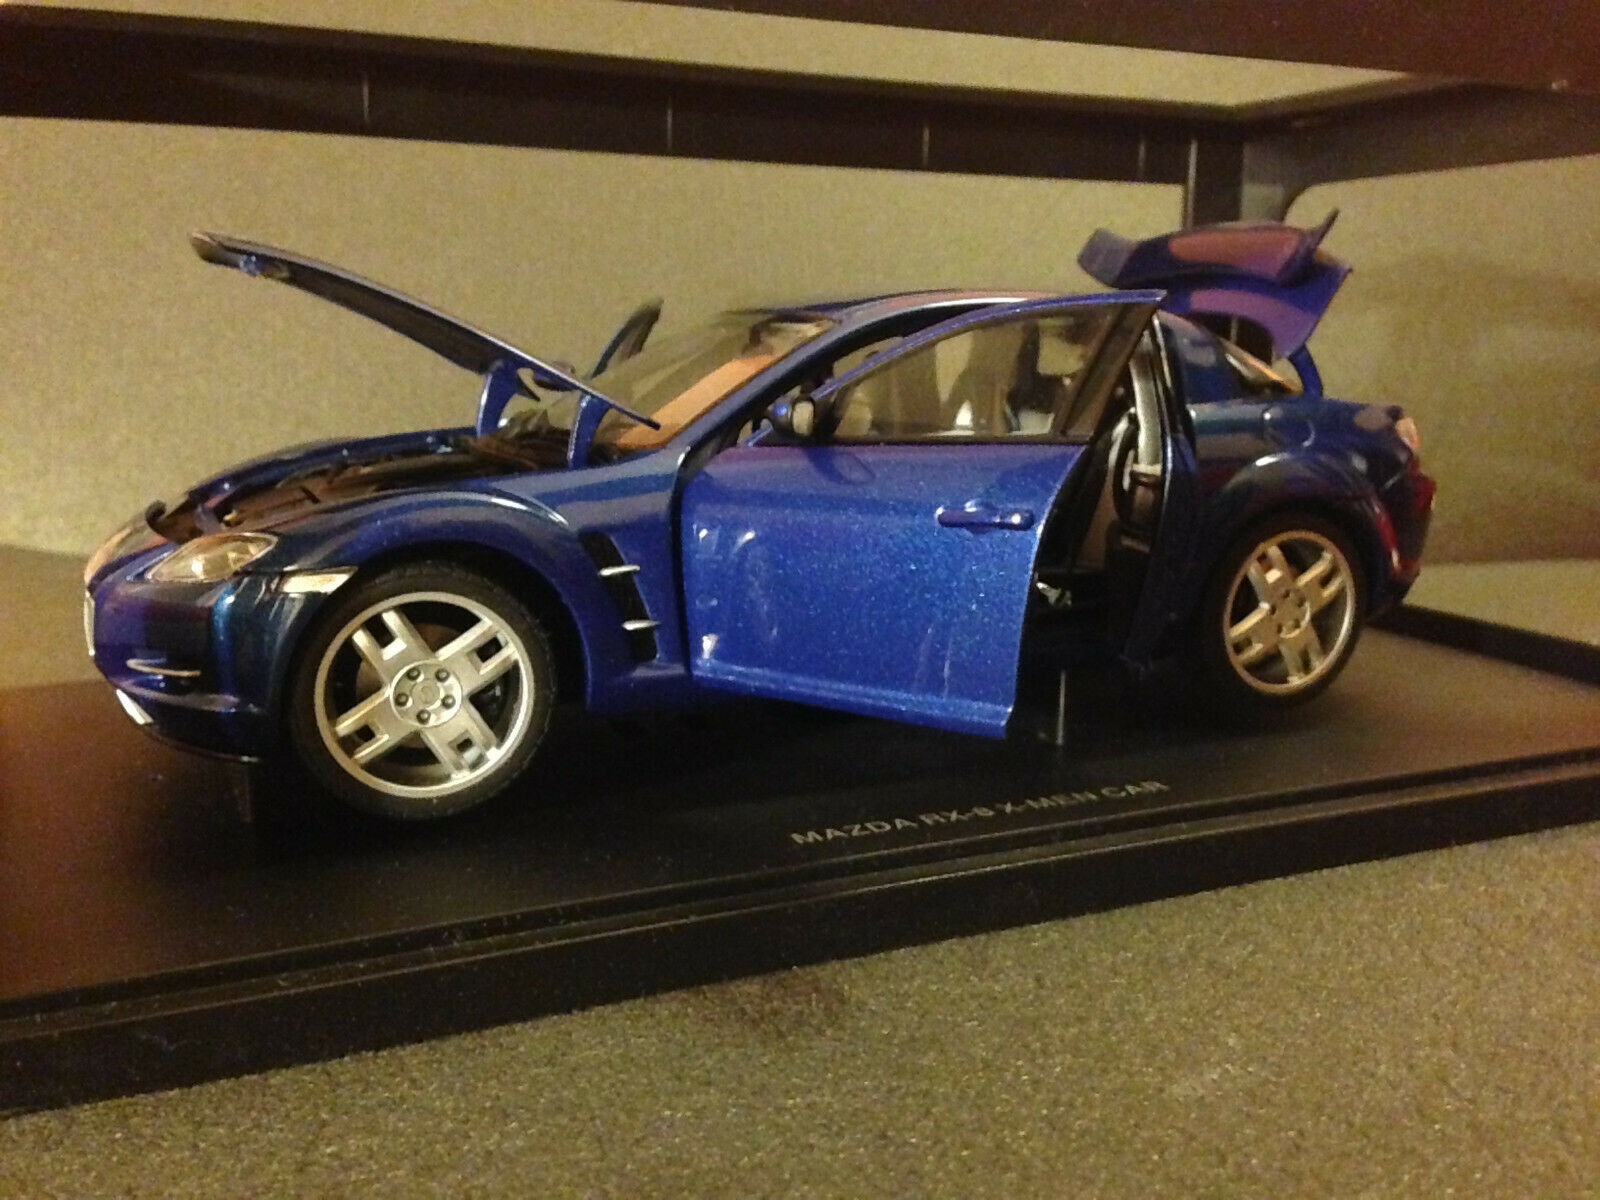 Mazda RX-8  X-Hommes   Limited Edition RX8 inklusive Zertifikat Autoart 75941 1 18  magasin discount